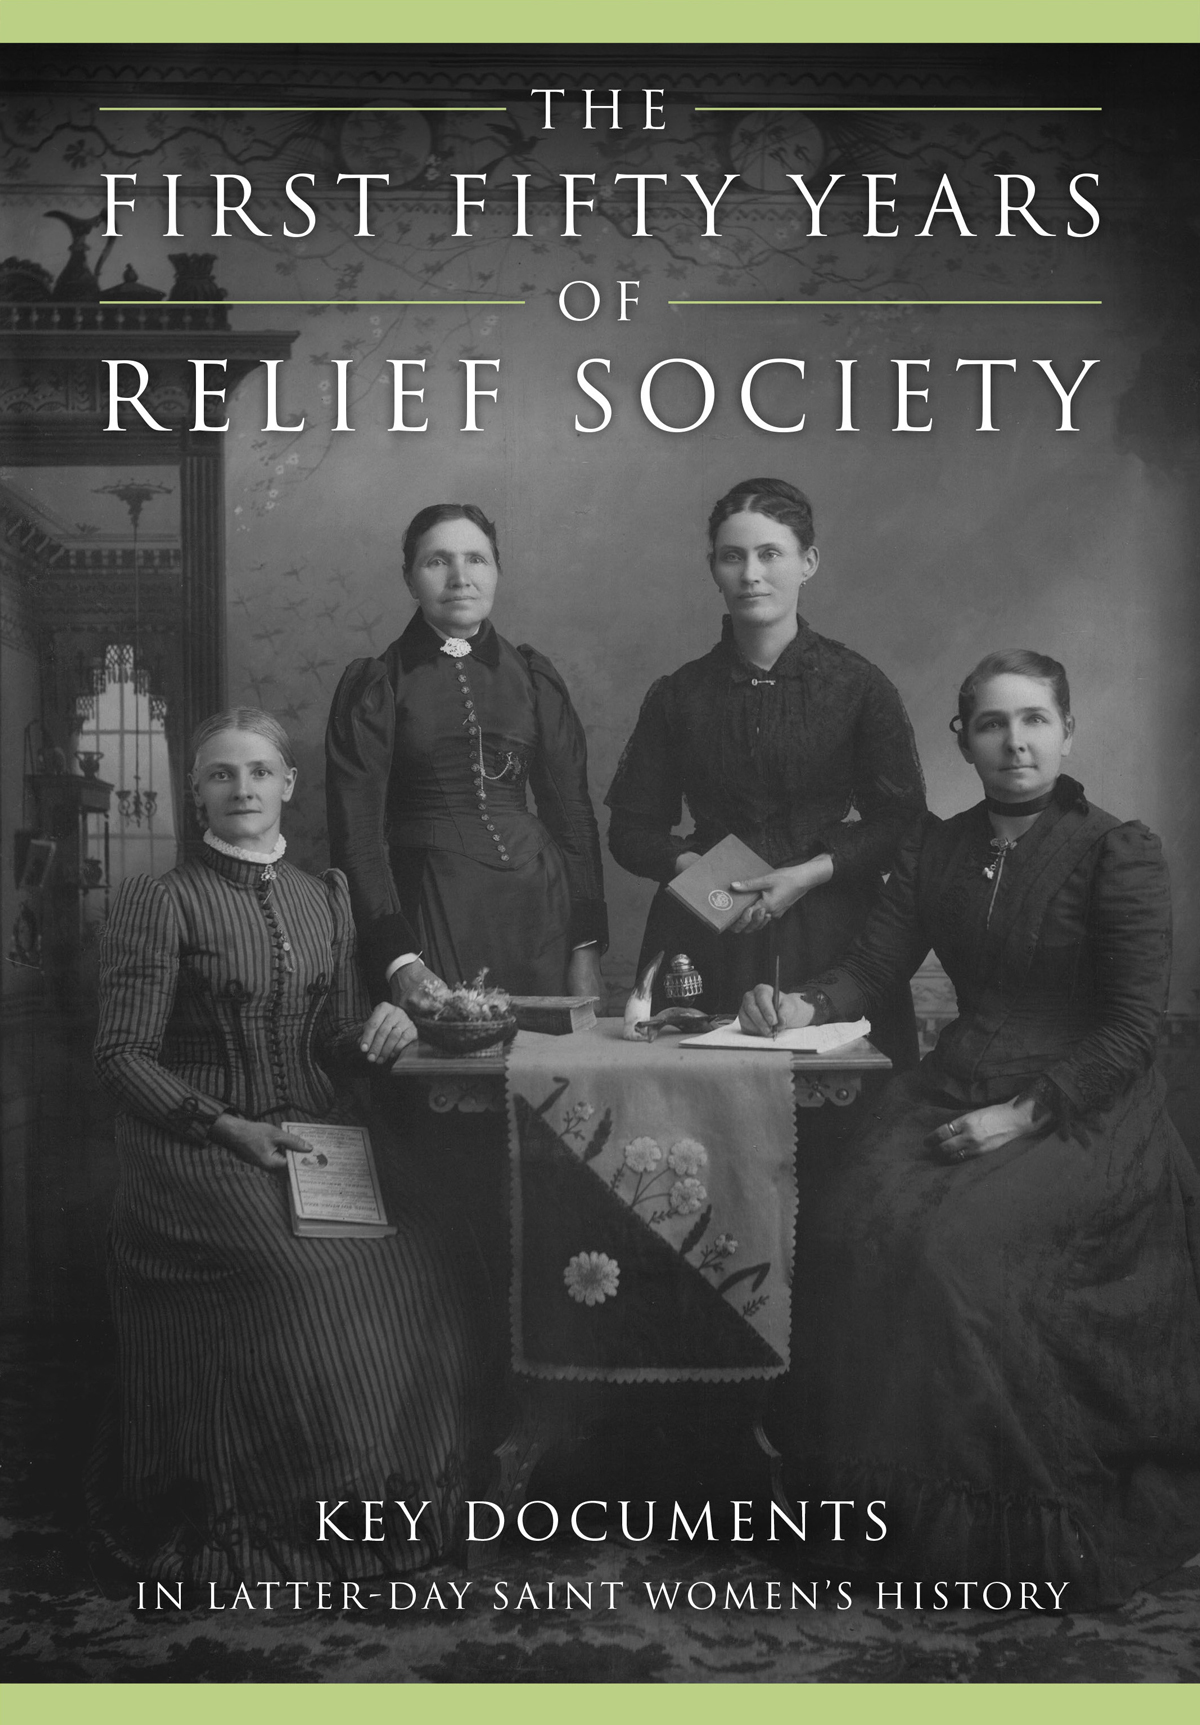 Relief Society historical documents published in hardback